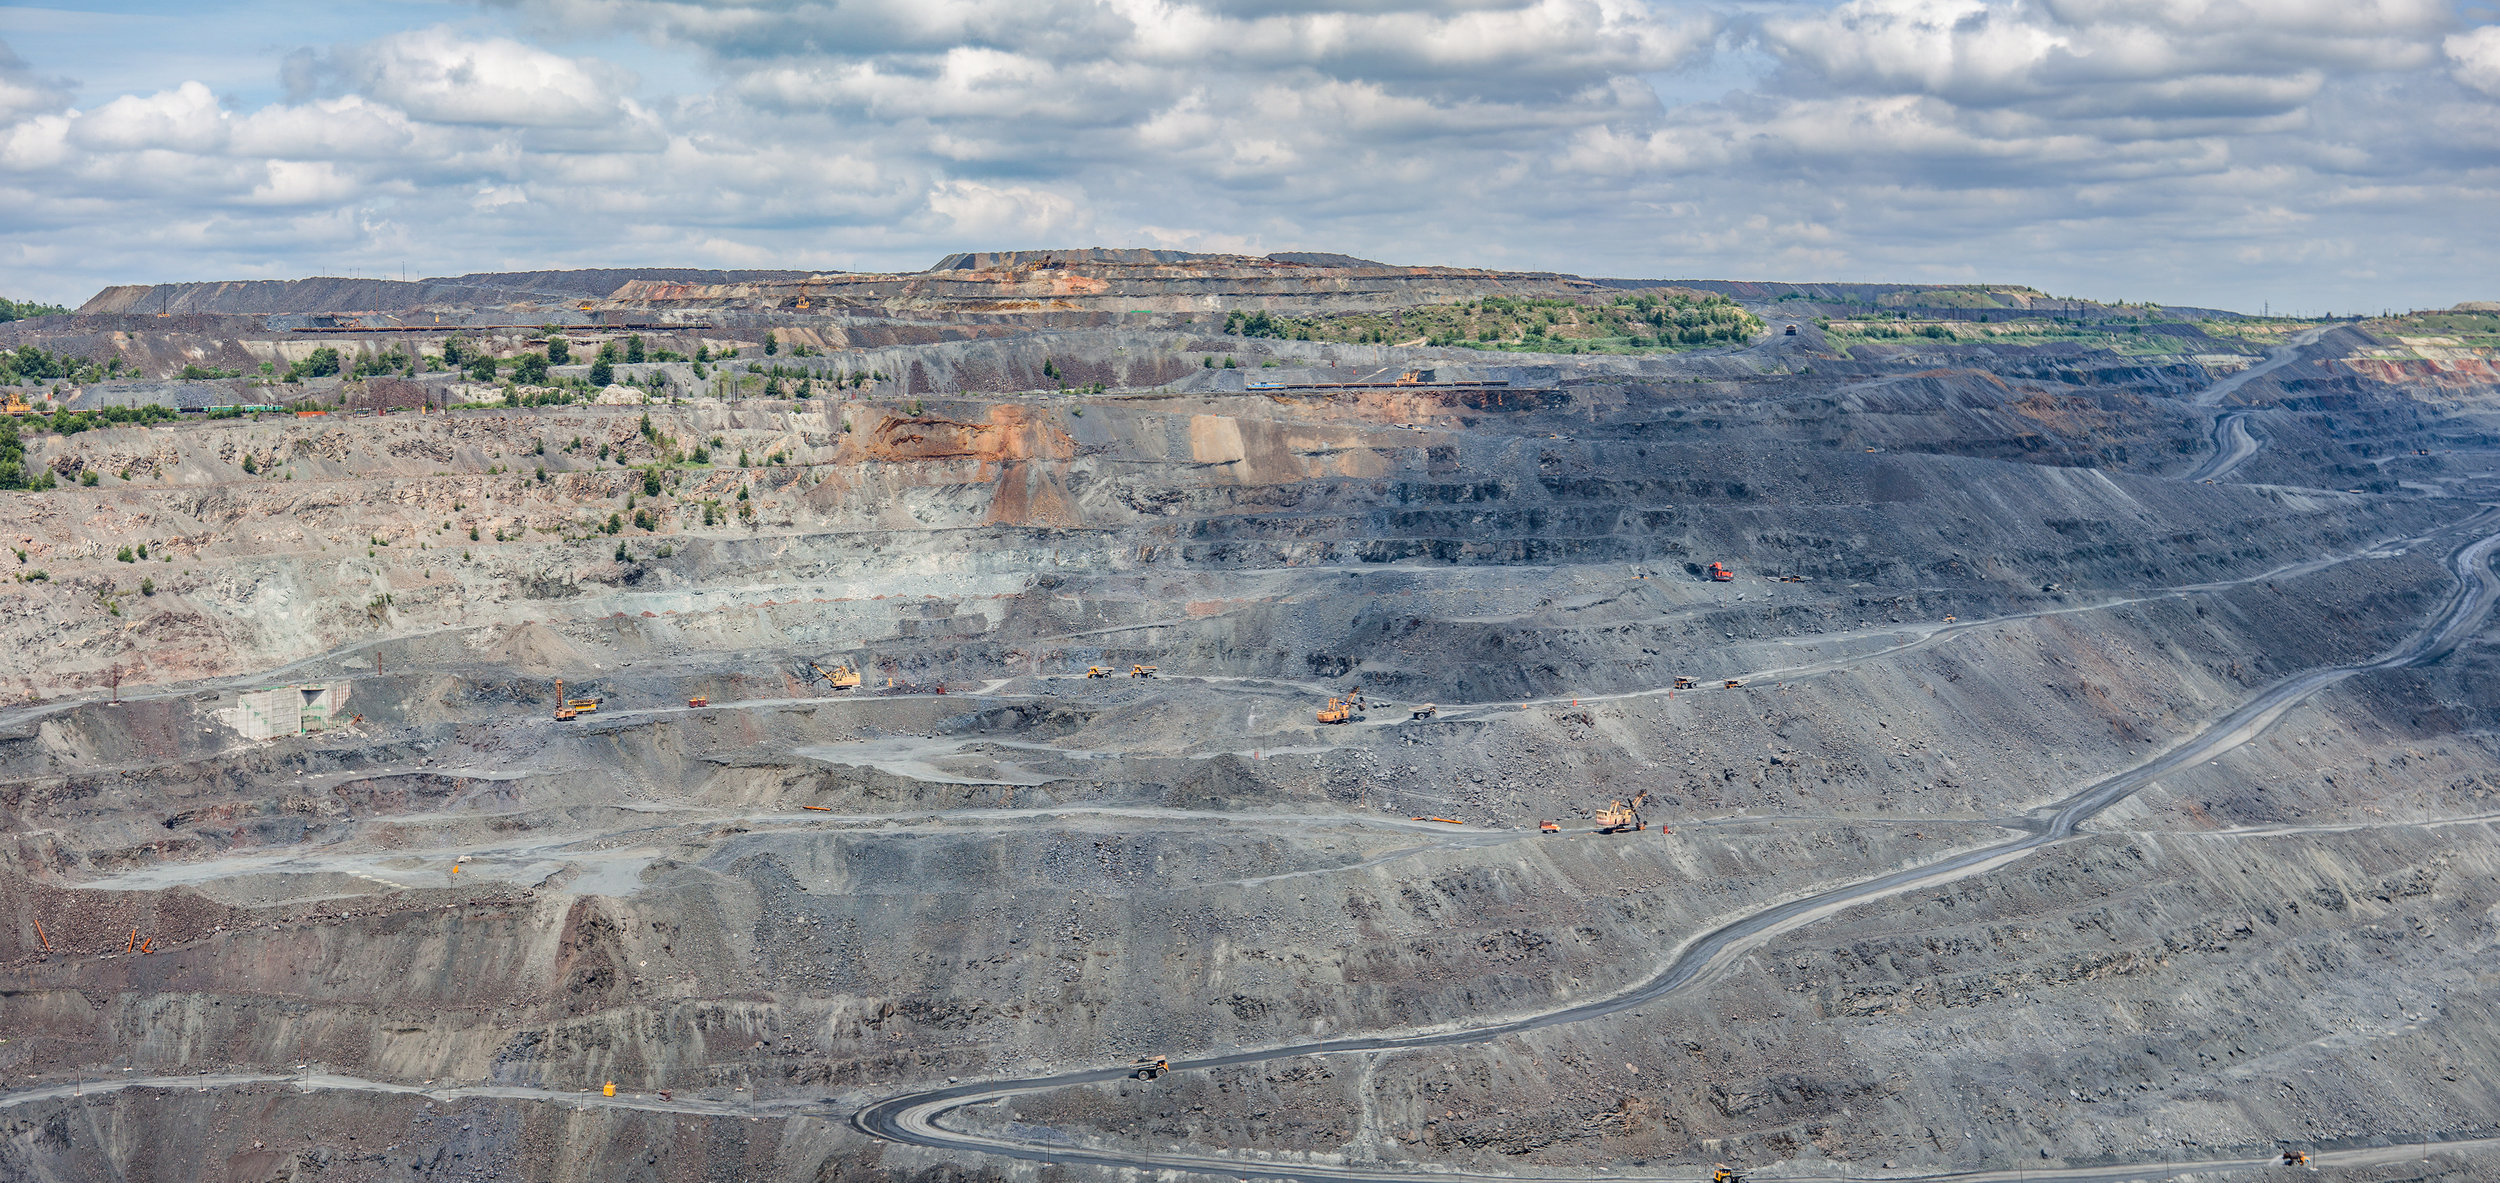 Getty image of open pit mine